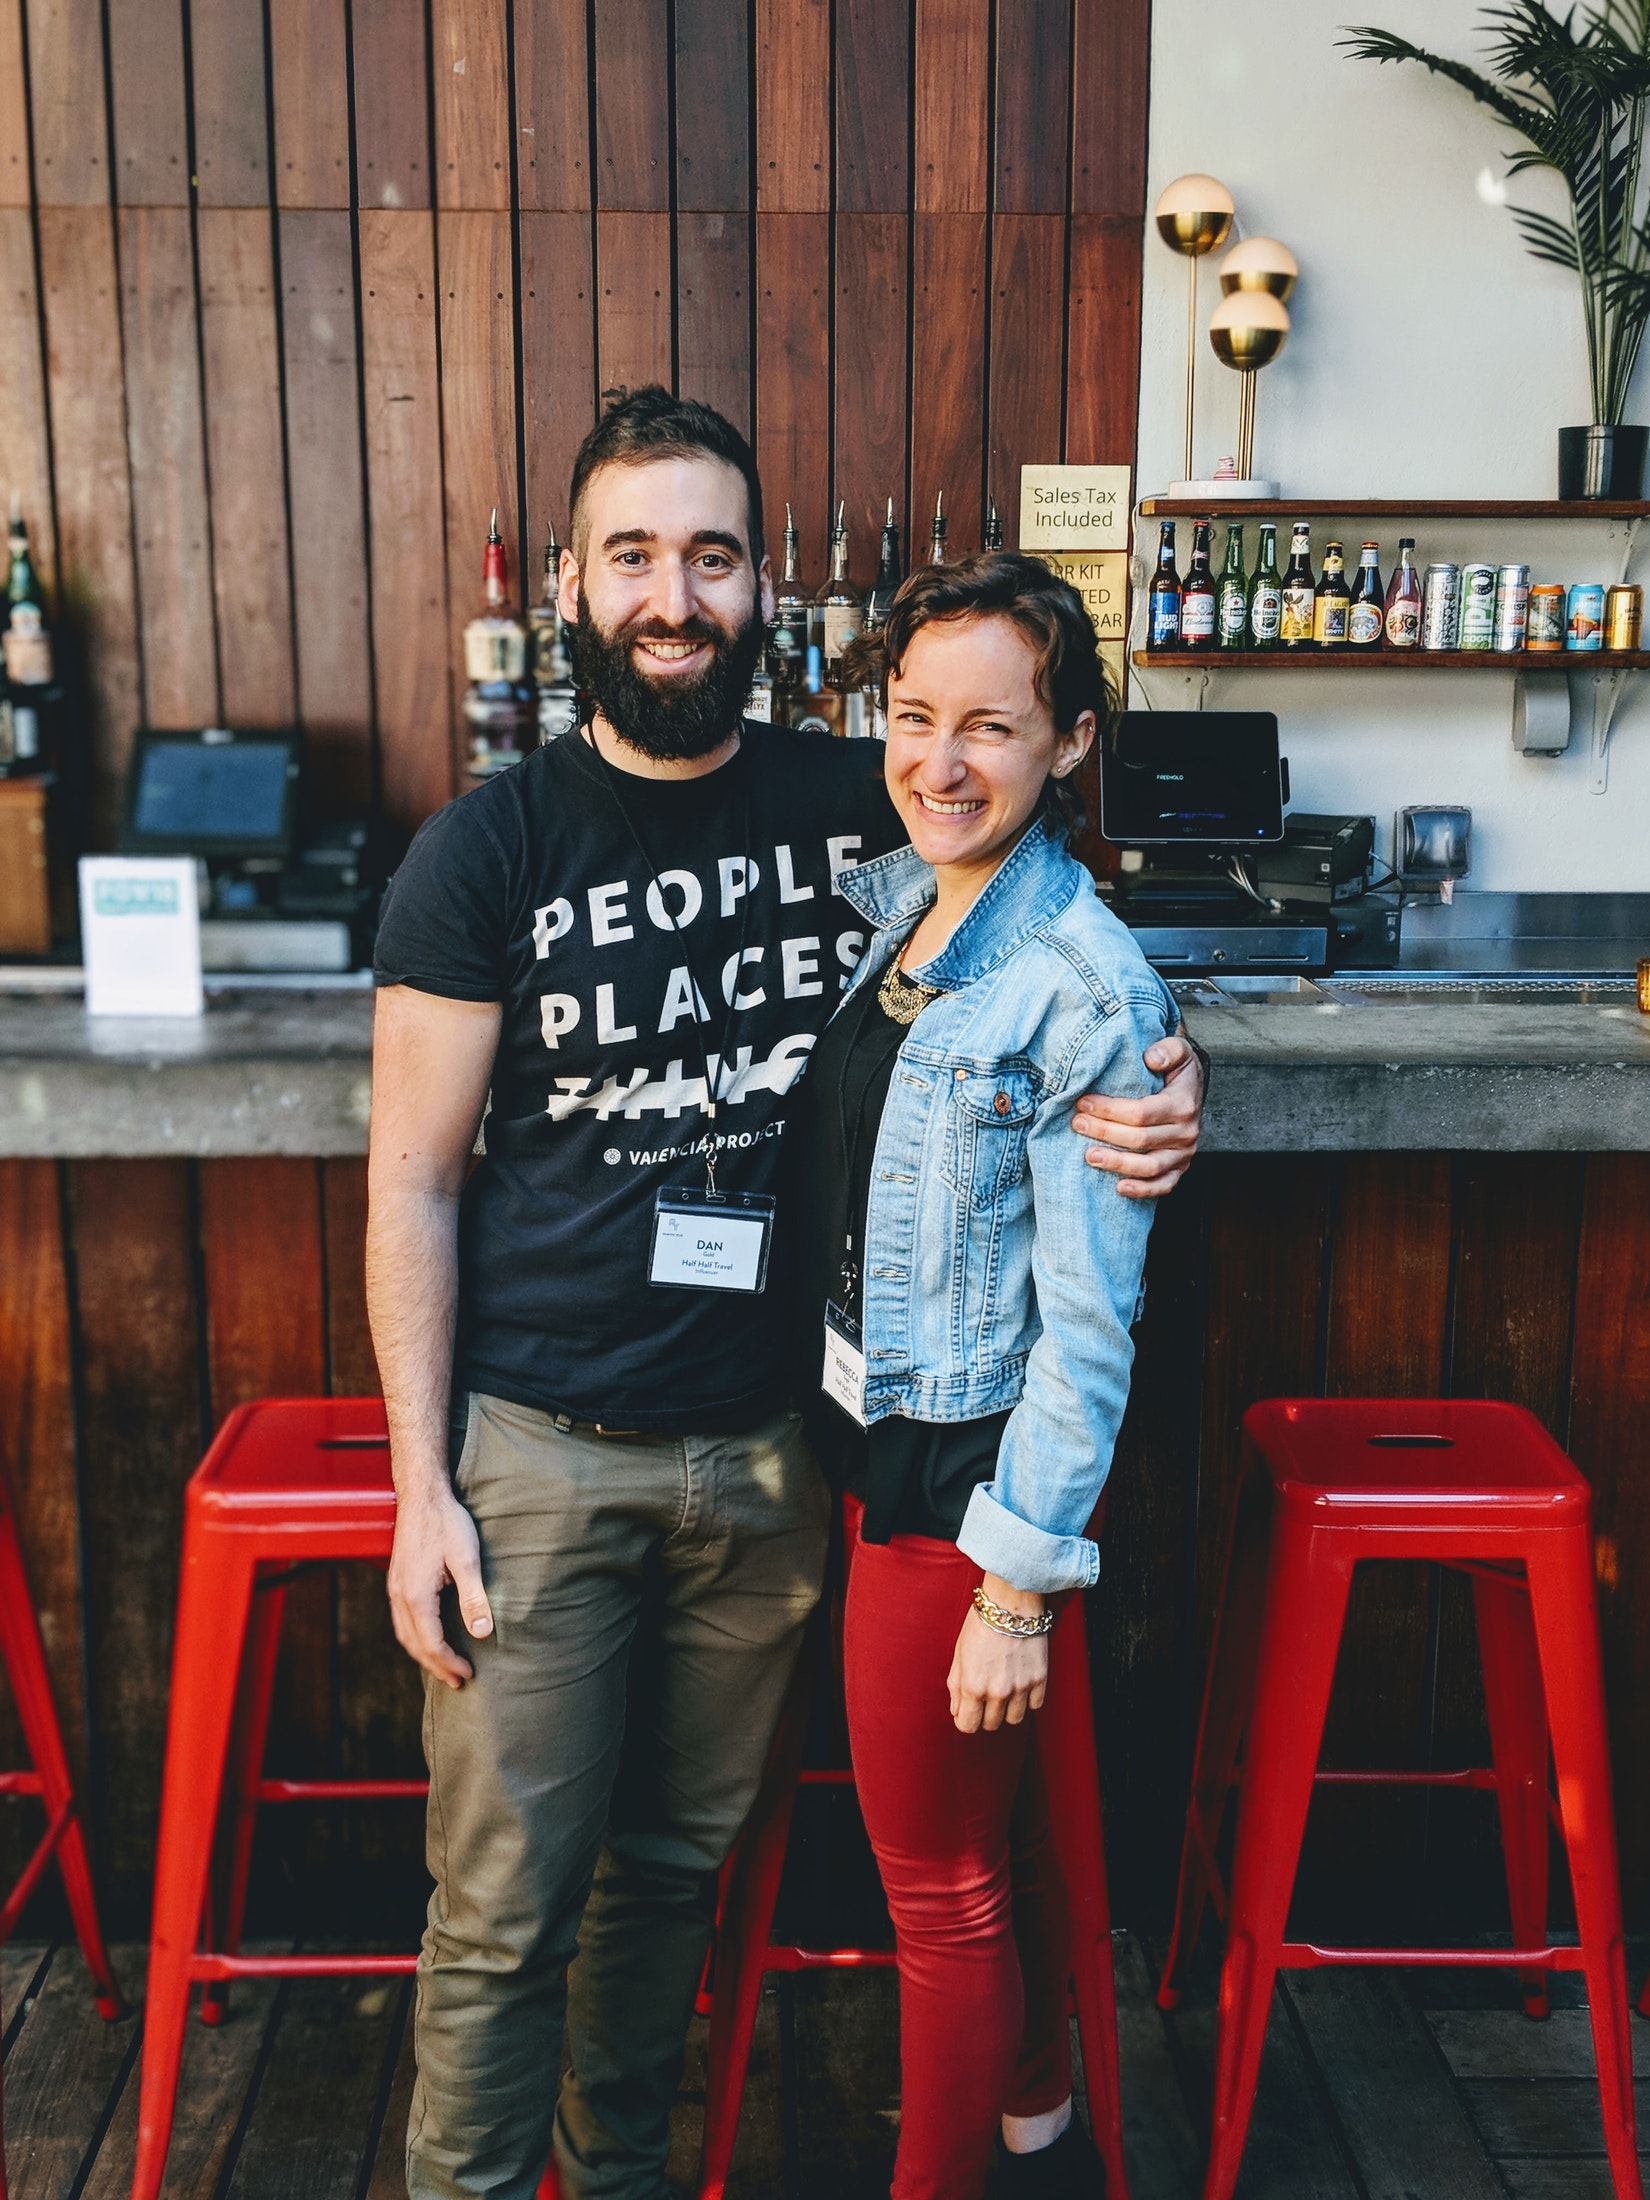 Becca and Dan at Future of work 2018